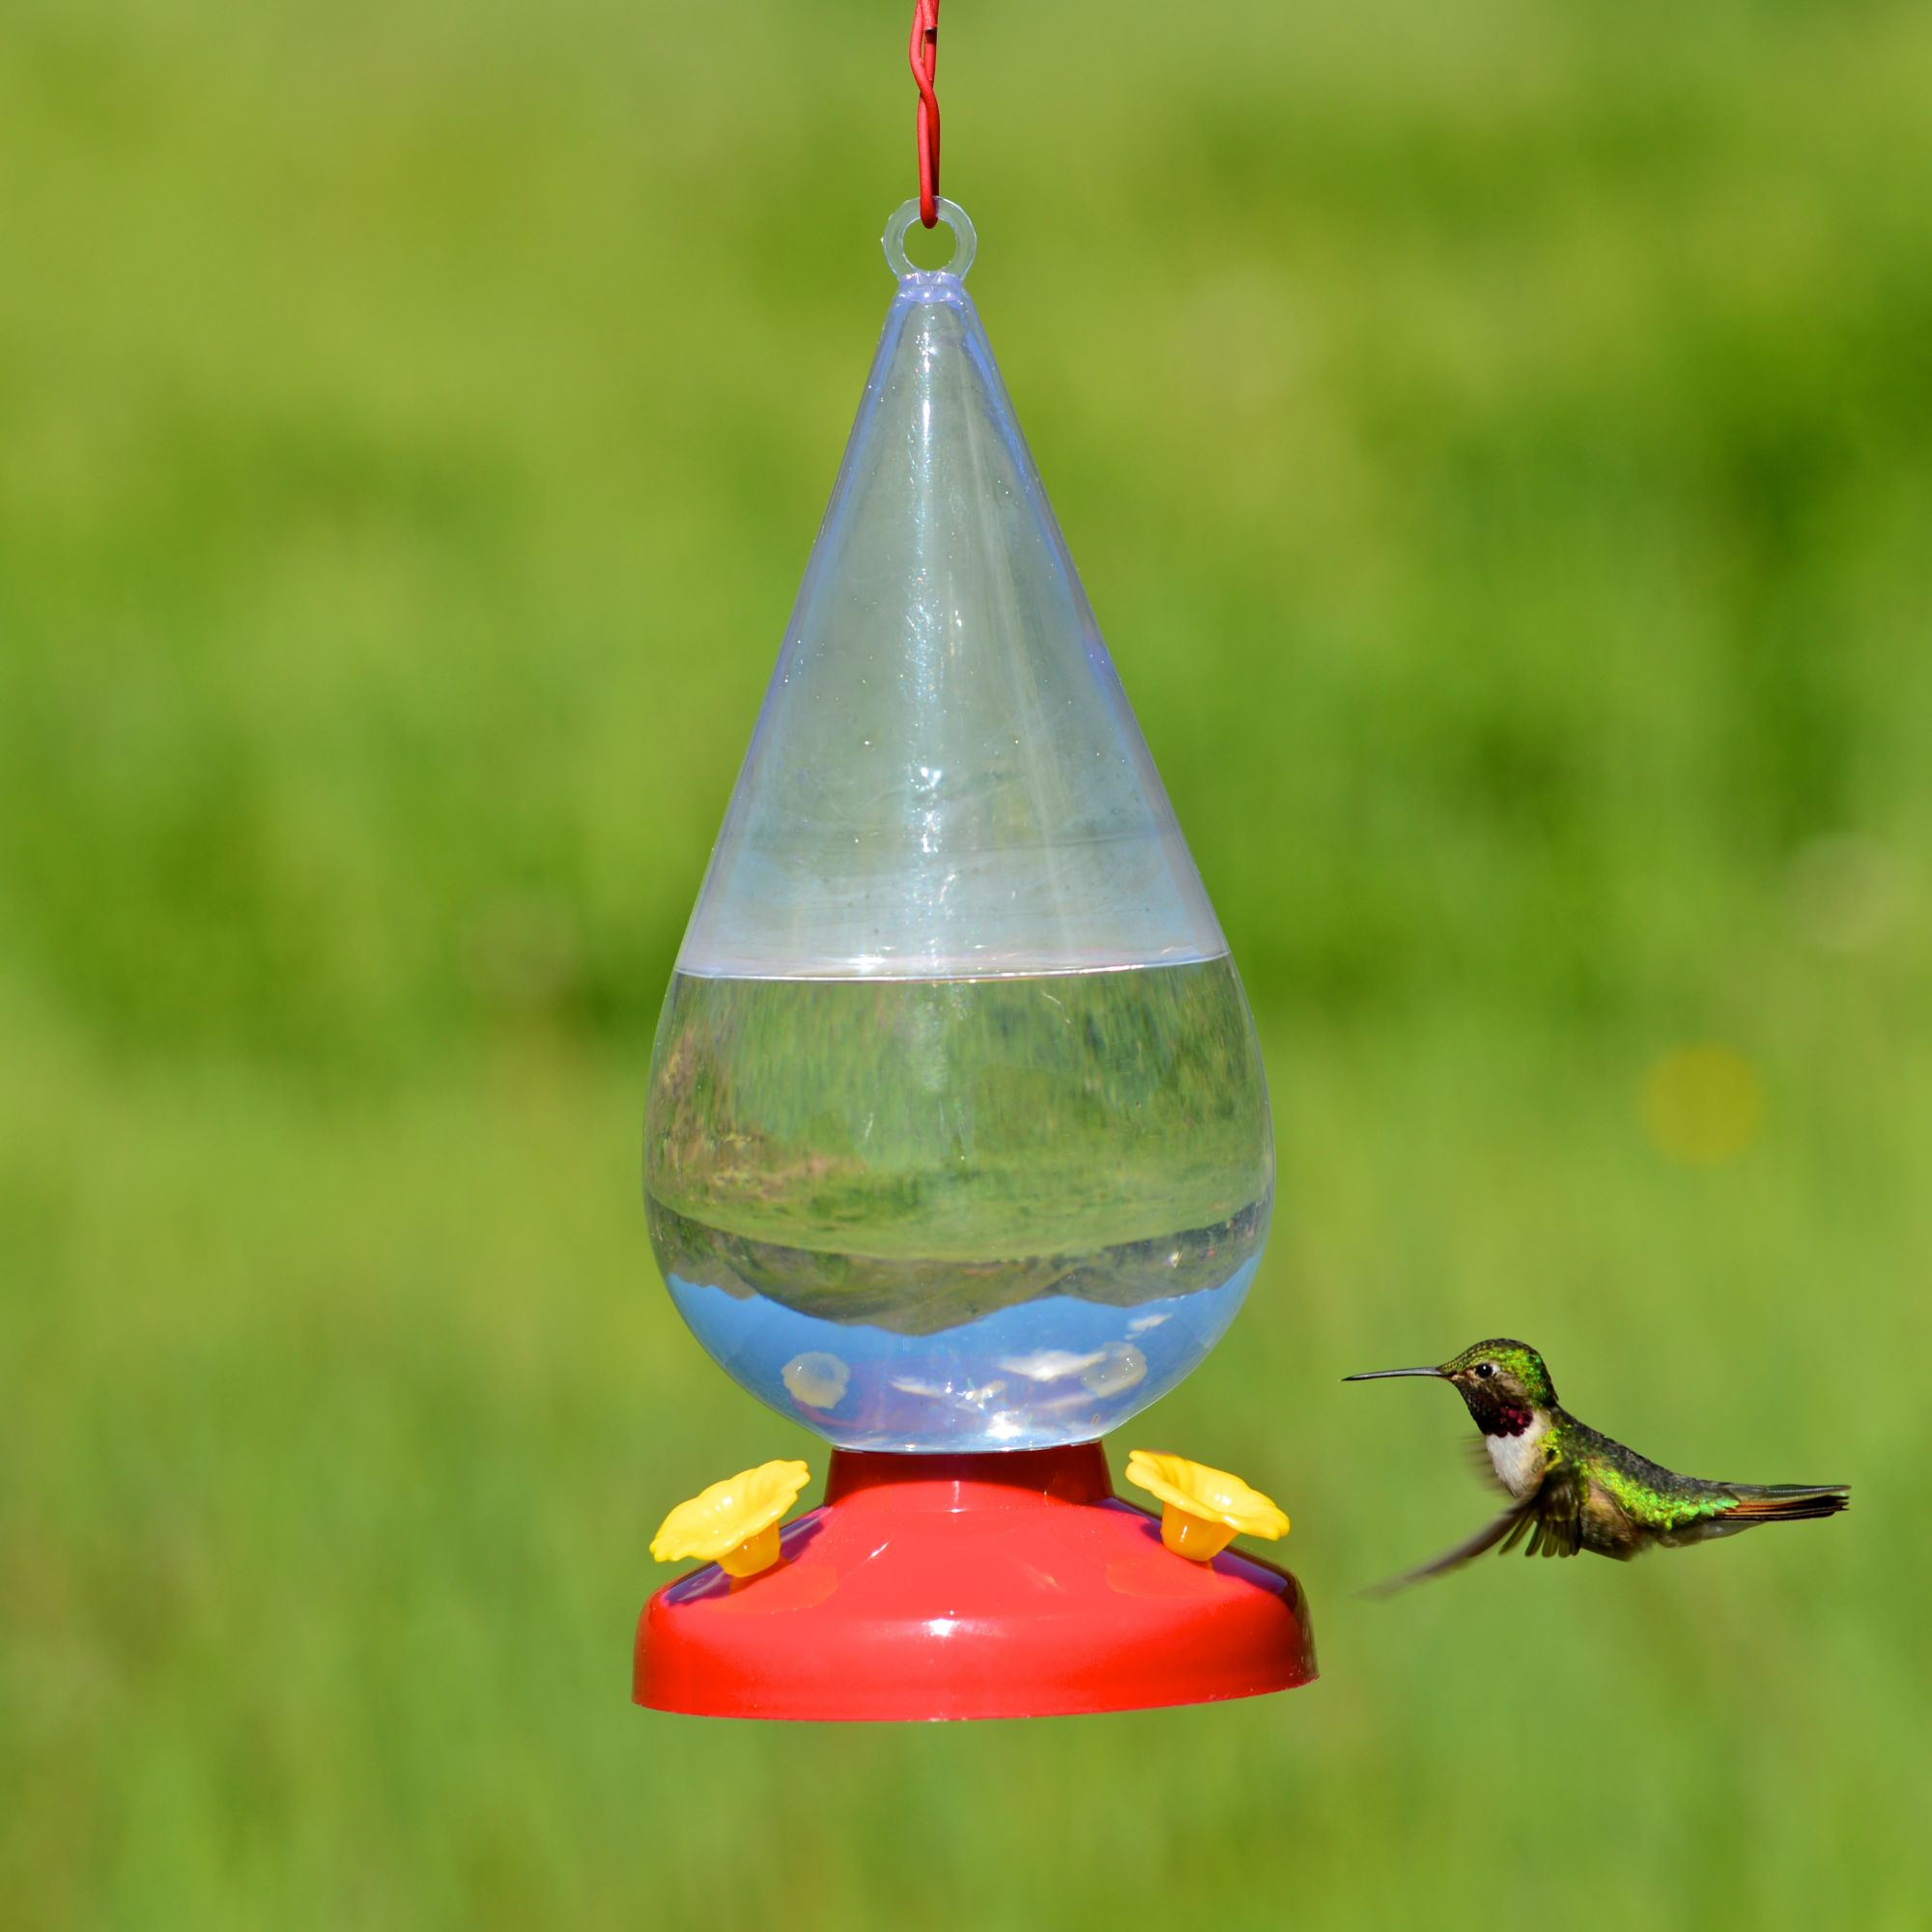 bird to for perches and wikihow a via feeder make decorative gardens hummingbird feeders pin com